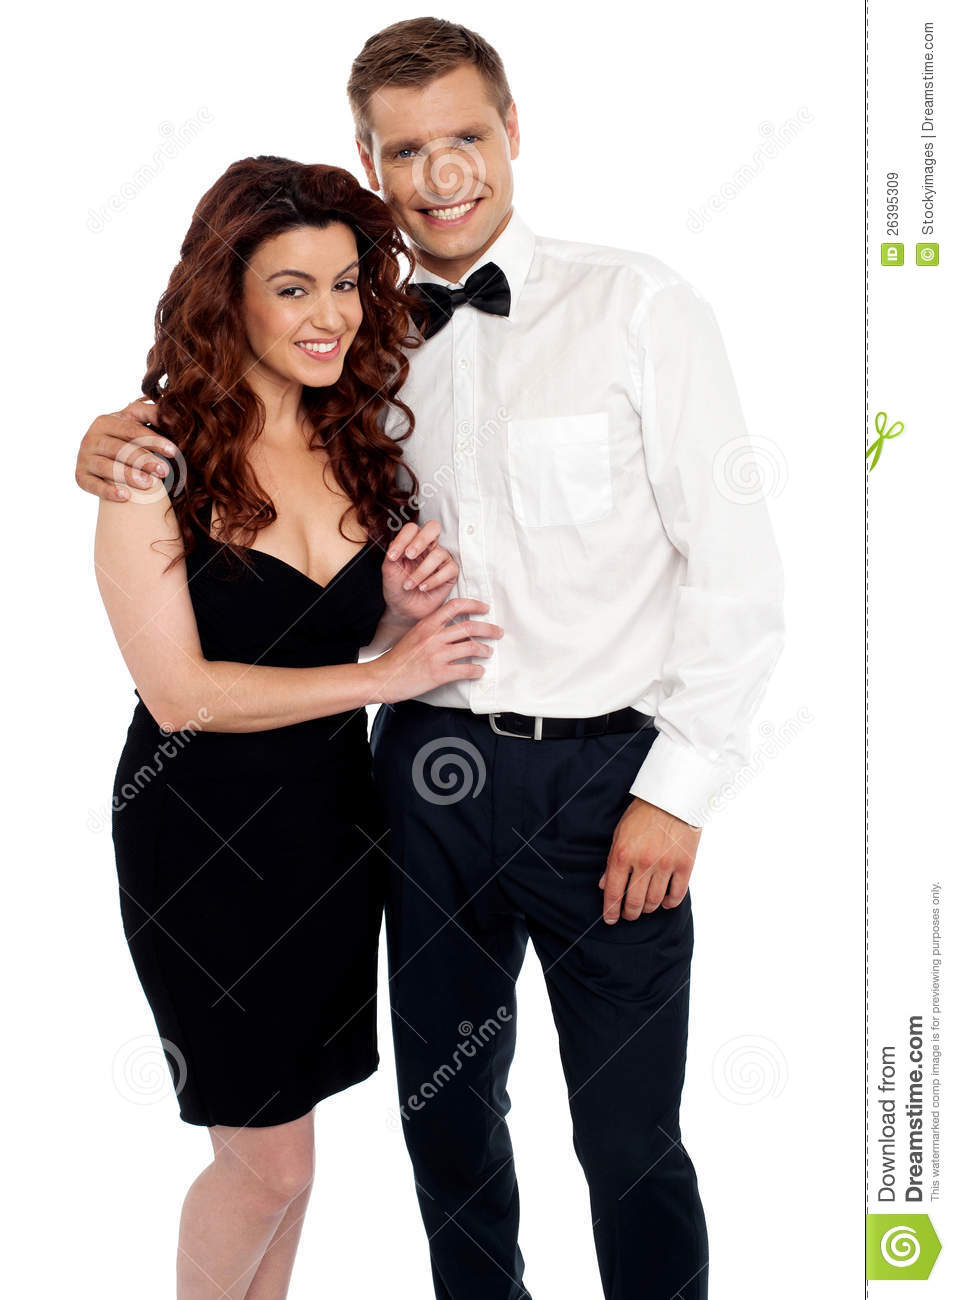 Charming young love couple hugging each other. Charming Young Love Couple Hugging Each Other Royalty Free Stock